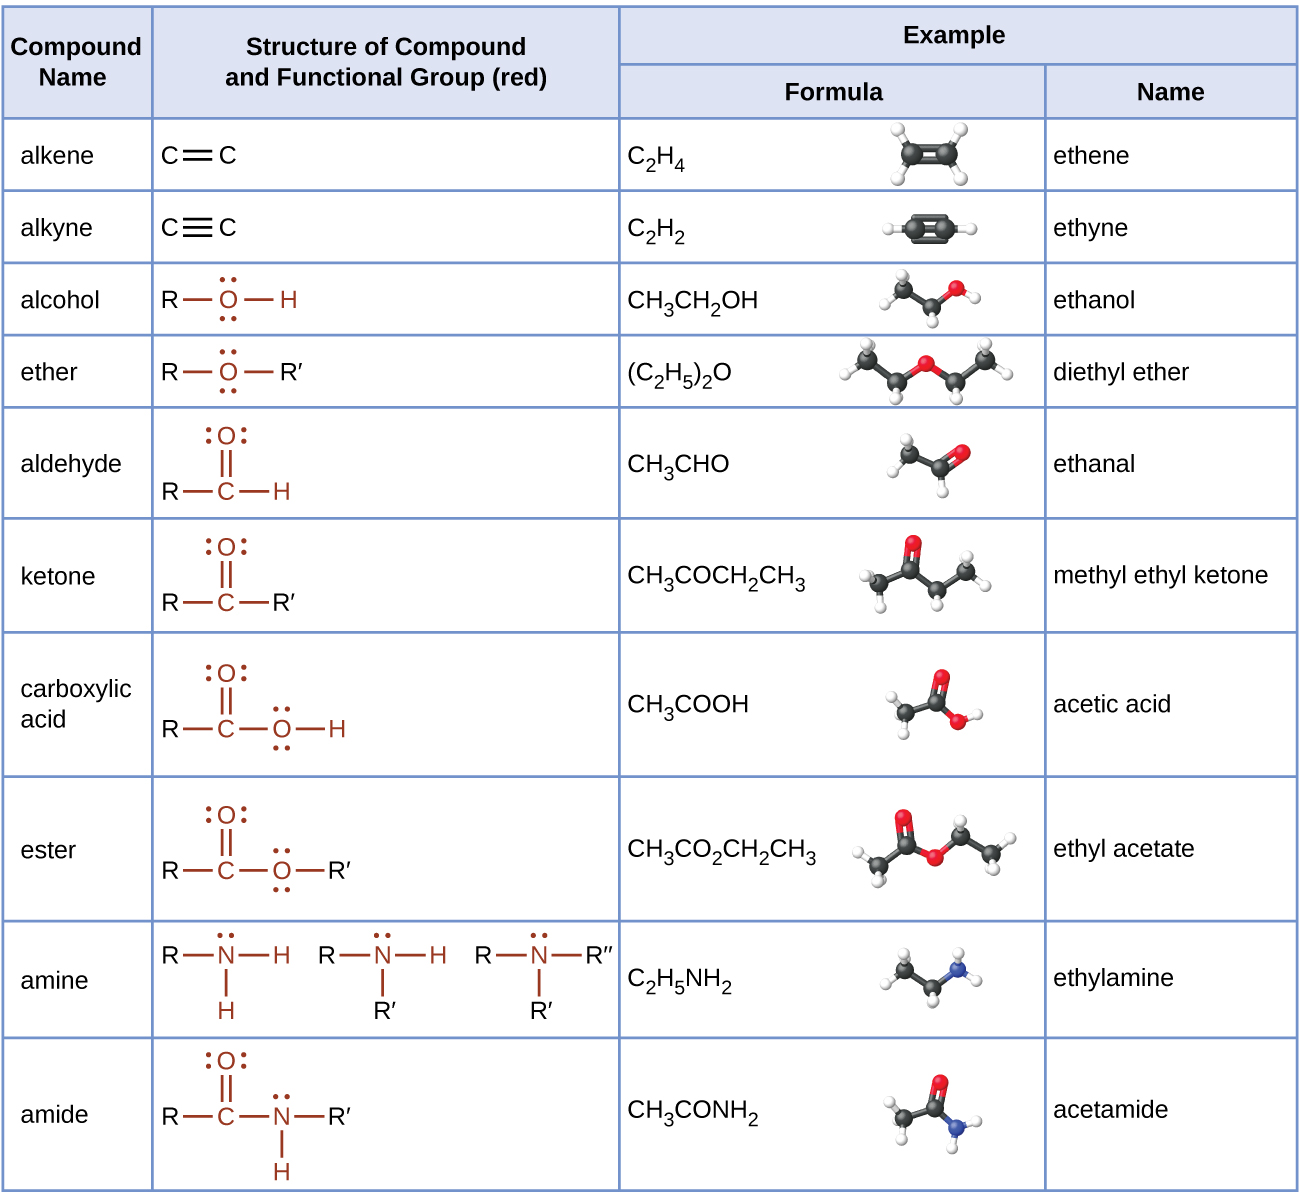 This table provides compound names, structures with functional groups in red, and examples that include formulas, structural formulas, ball-and-stick models, and names. Compound names include alkene, alkyne, alcohol, ether, aldehyde, ketone, carboxylic acid, ester, amine, and amide. Alkenes have a double bond. A formula is C subscript 2 H subscript 4 which is named ethene. The ball-and-stick model shows two black balls forming a double bond and each is bonded to two white balls. Alkynes have a triple bond. A formula is C subscript 2 H subscript 2 which is named ethyne. The ball-and-stick model shows two black balls with a triple bond between them each bonded to one white ball. Alcohols have an O H group. The O has two pairs of electron dots. A formula is C H subscript 3 C H subscript 2 O H which is named ethanol. The ball-and-stick model shows two black balls and one red ball bonded to each other with a single bond. There are four white balls visible. Ethers have an O atom in the structure between two R groups. The O atom has two sets of electron dots. A formula is ( C subscript 2 H subscript 5 ) subscript 2 O which is named ethanal. The ball-and-stick model shows two black balls bonded to a red ball which is bonded to two more black balls. All bonds are single. There are five white balls visible. Aldehydes have a C atom to which a double bonded O and an H and an R are included in the structure. The O atom has two sets of electron dots. A formula is C H subscript 3 C H O which is named Ethanal. The ball-and-stick model shows two black bonds bonded to two red balls. The ball-and-stick model shows two black balls bonded with a single bond and the second black ball forms a double bond with a red ball. There are three white balls visible. Ketones show a C atom to which a double bonded O is attached. The left side of the C atom is bonded to R and the right side is bonded to R prime. The O atom as two sets of electron dots. The formula is C H subscript 3 C O C H subscript